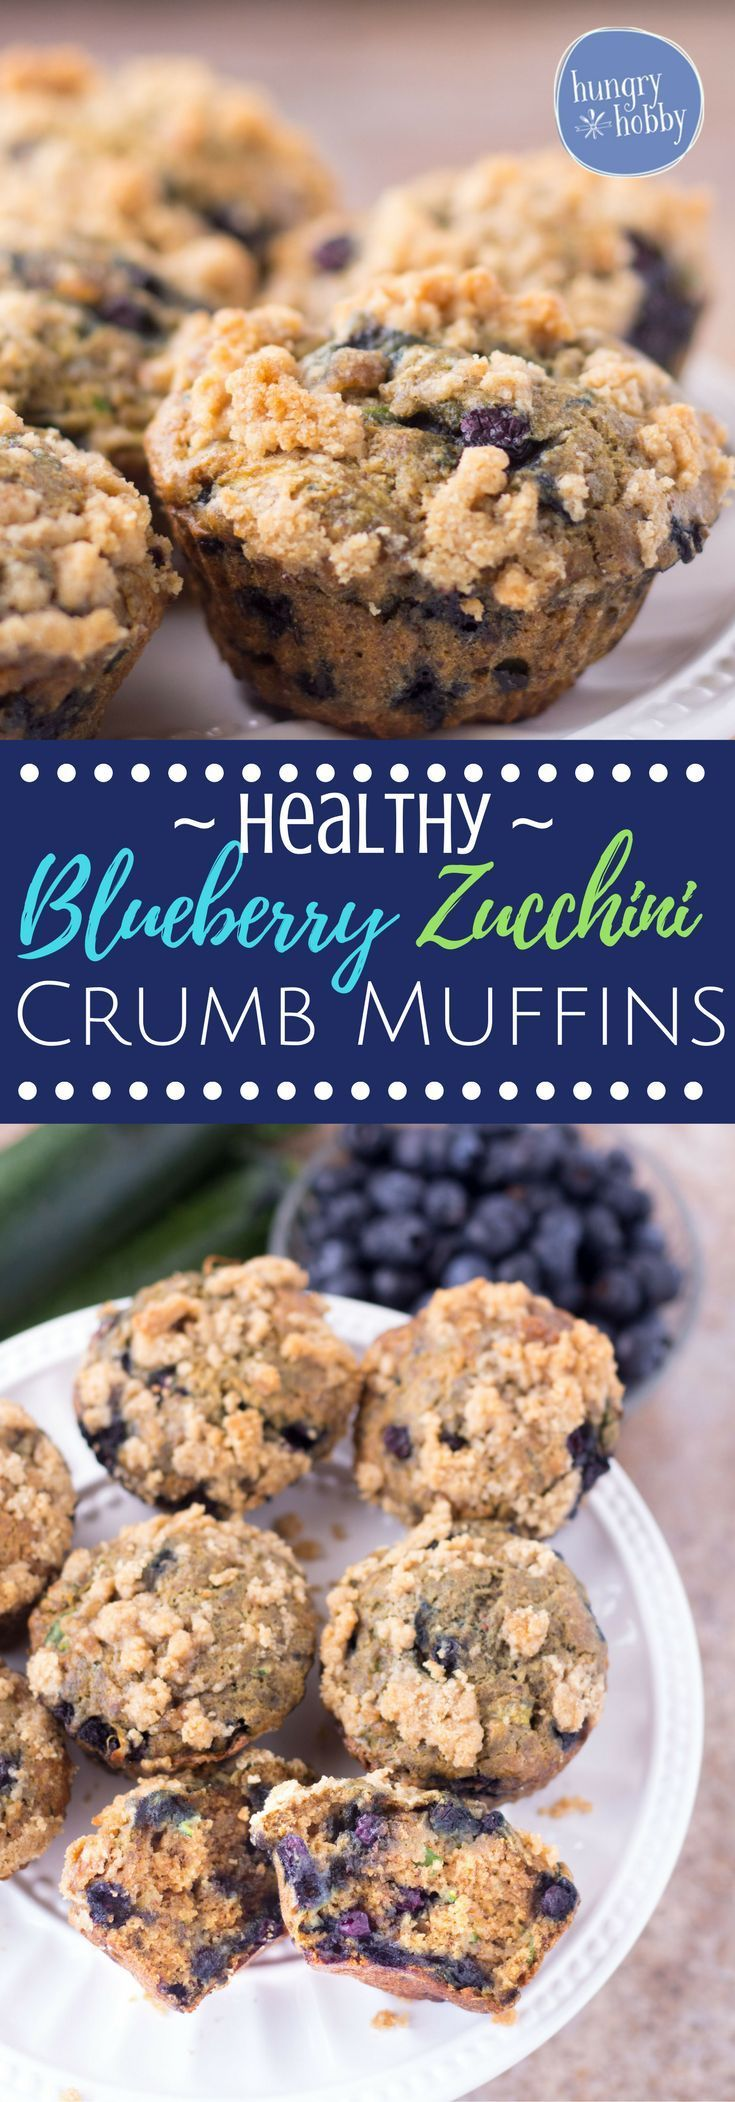 These healthy blueberry zucchini muffins are bursting with warm freshly baked blueberries and a sweet crumb topping, you'd never guess they contain a vegetable! via /hungryhobby/